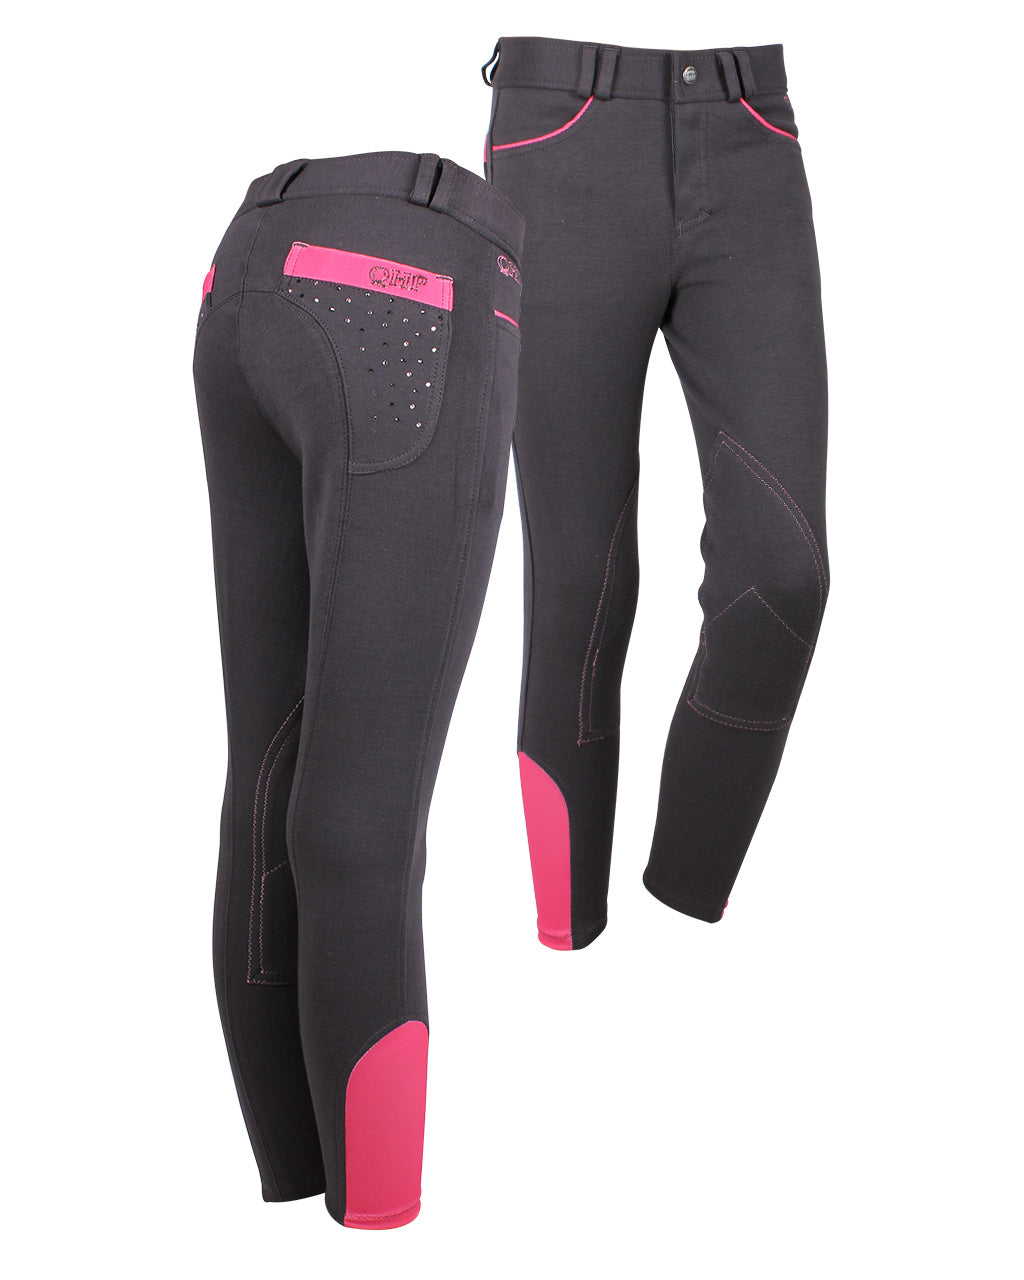 Pearl Childrens Breeches